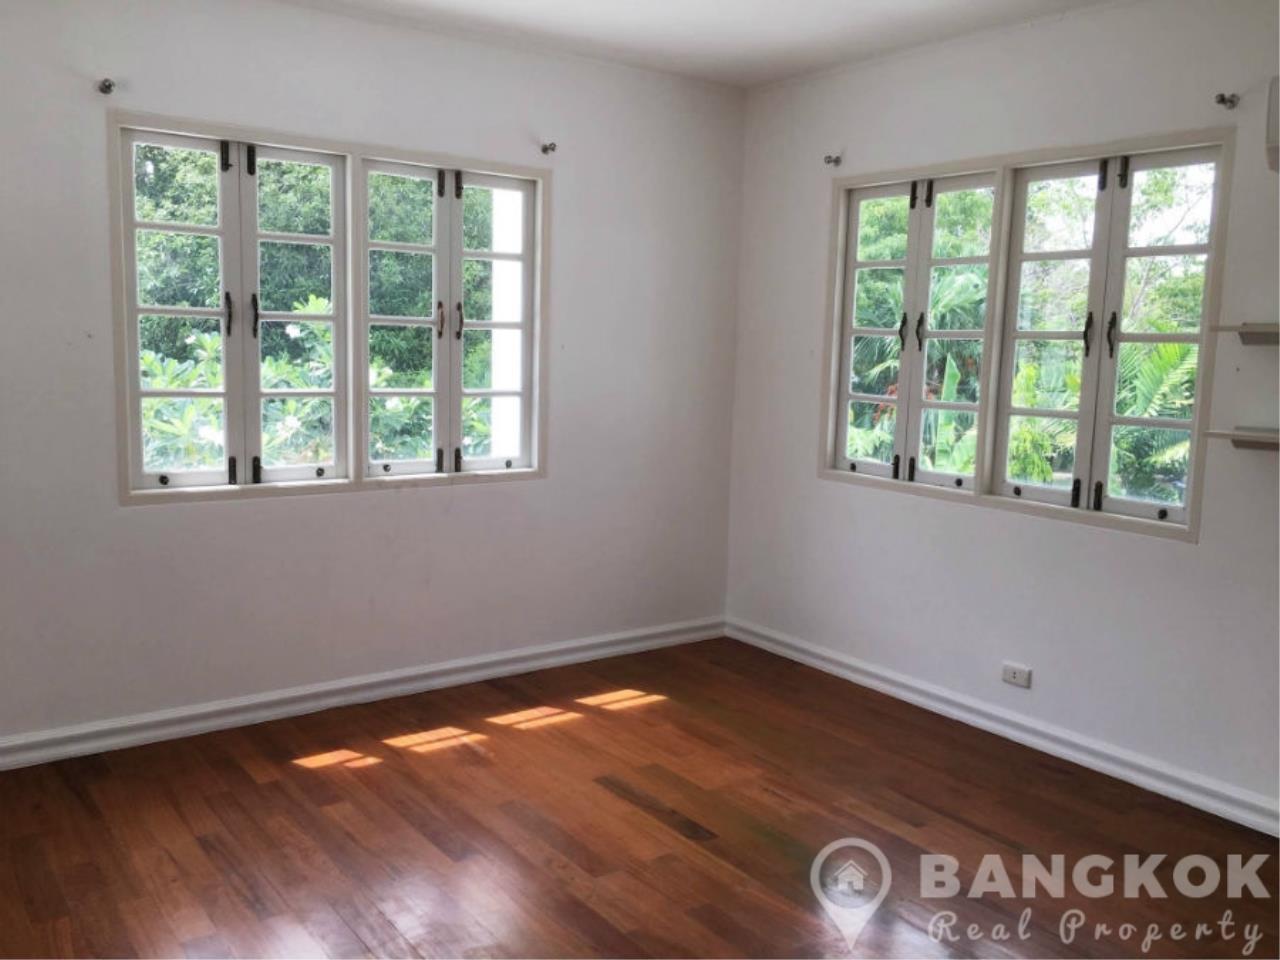 Bangkok Real Property Agency's Spacious, Detached 4 Bed 4 Bath House near Bangkok Patana School  4